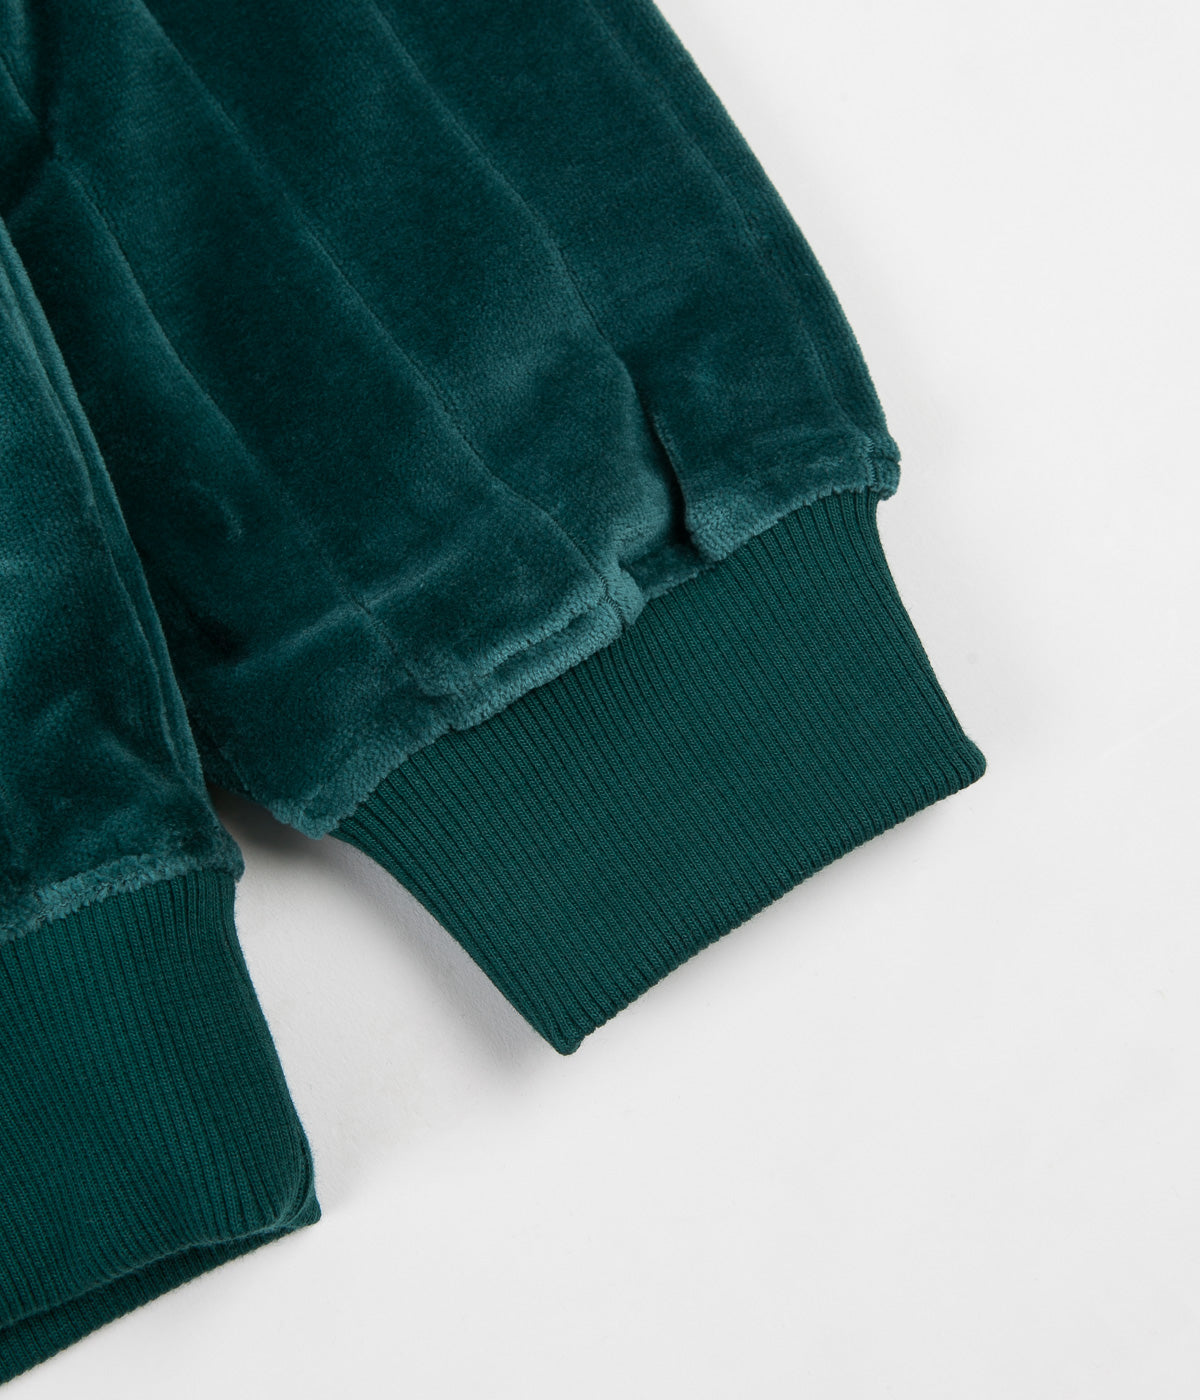 Polar Velour Zip Neck Sweatshirt - Dark Green